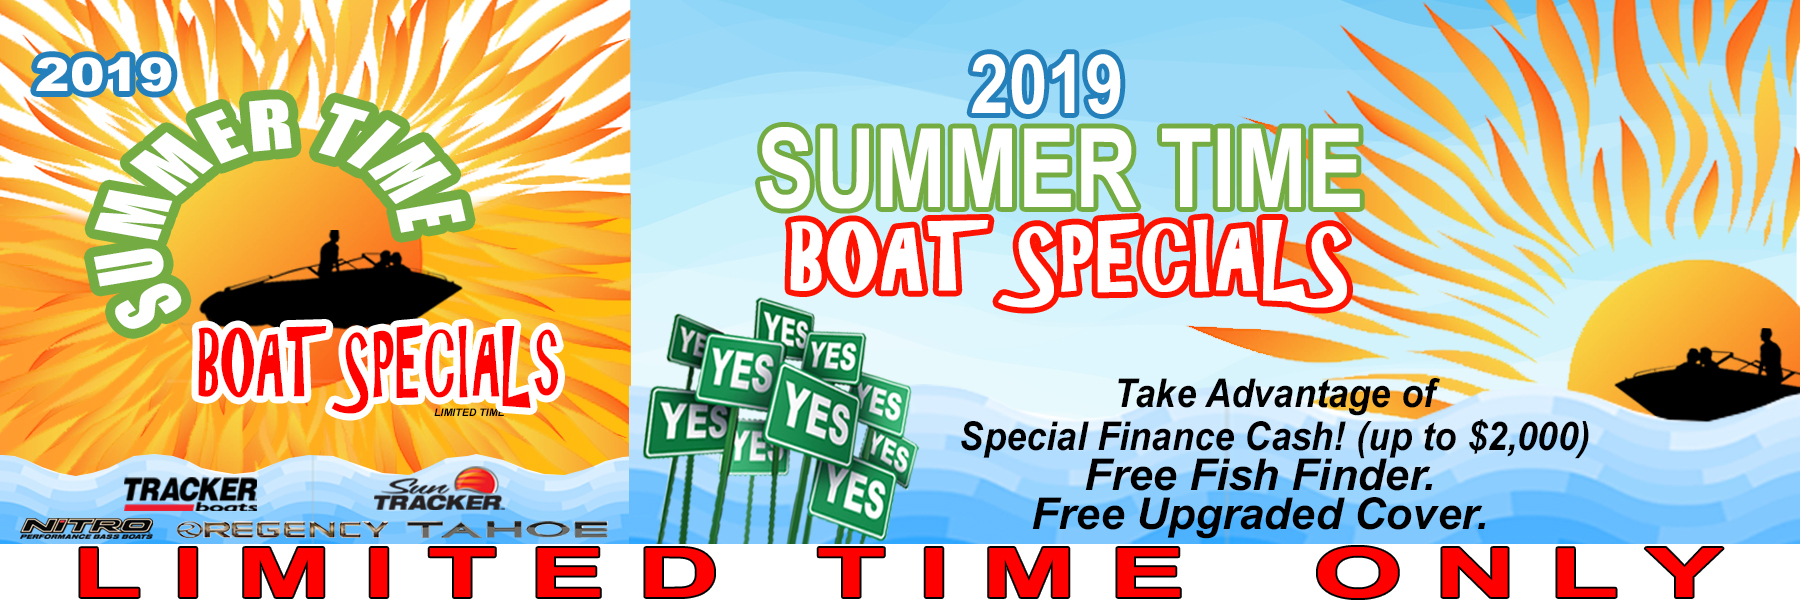 2019 Summer Time Boat Specials